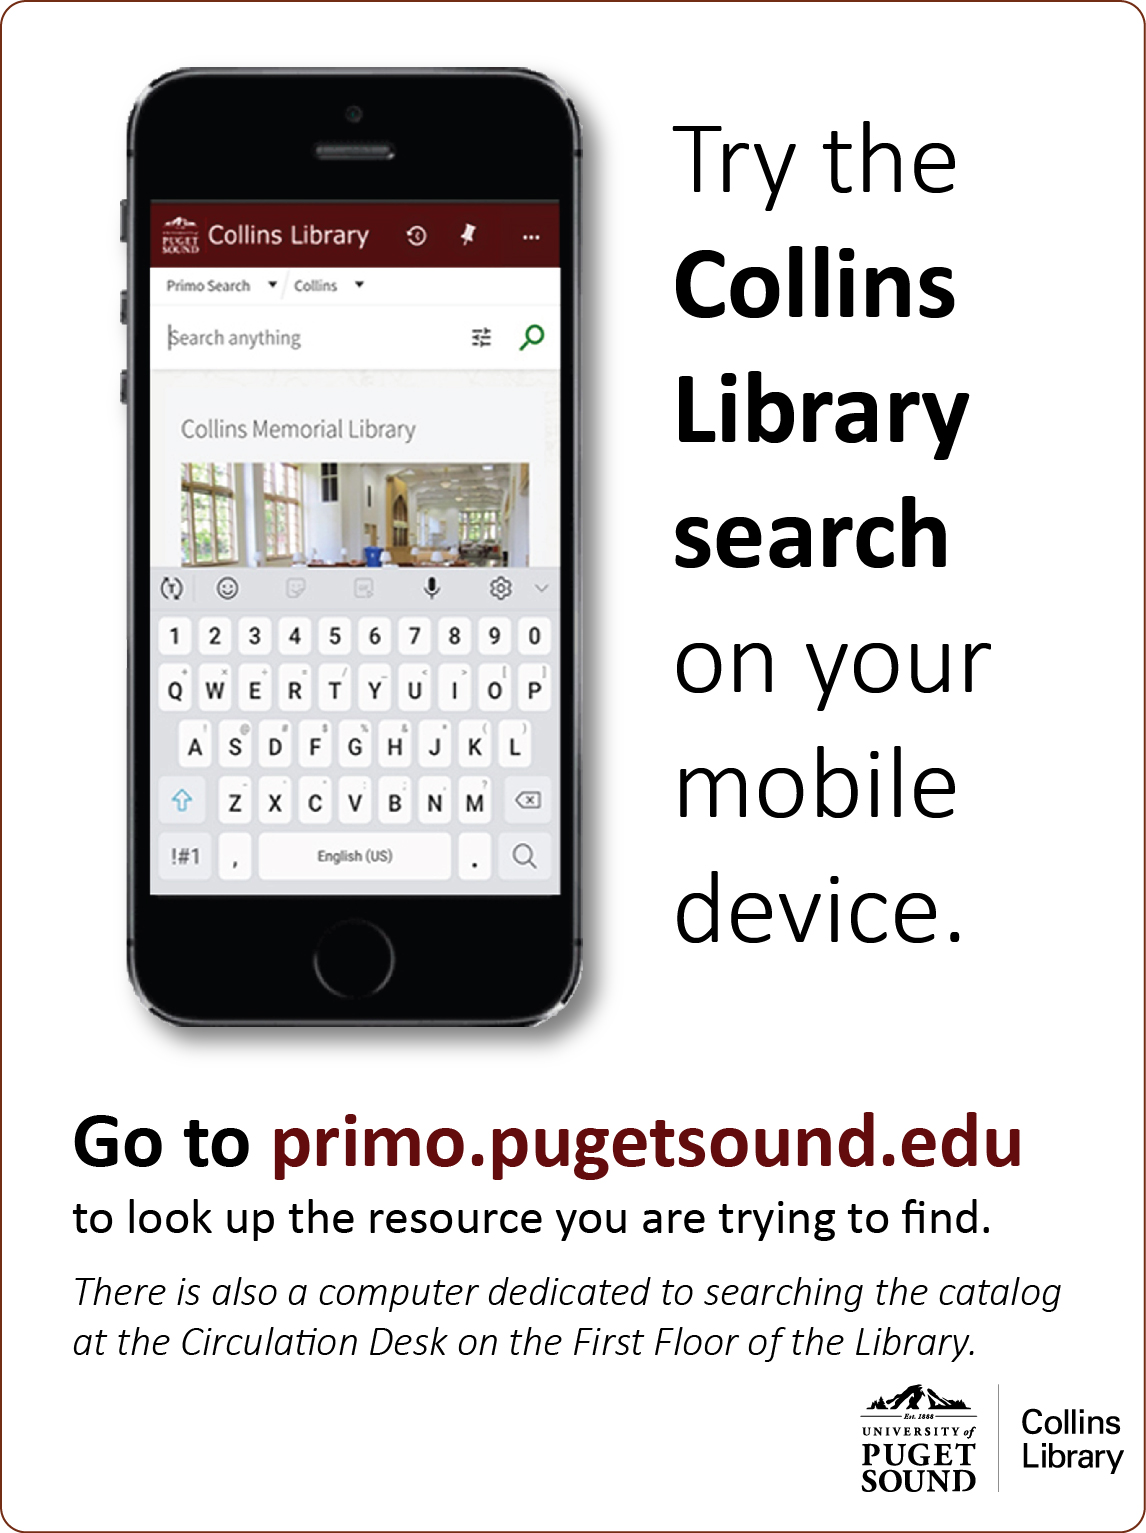 Go to primo.pugetsound.edu to look up the resource you are trying to find. There is also a computer dedicated to searching the catalogat the Circulation Desk on the First Floor of the Library.